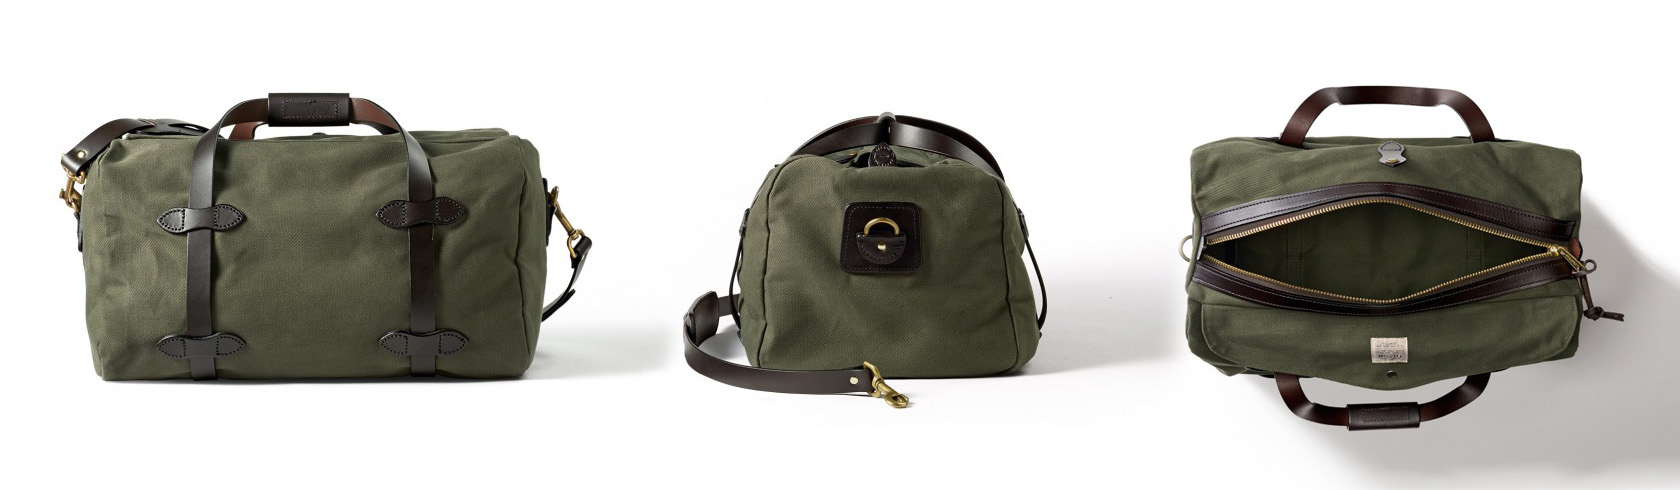 Filson Duffle Gym Bag